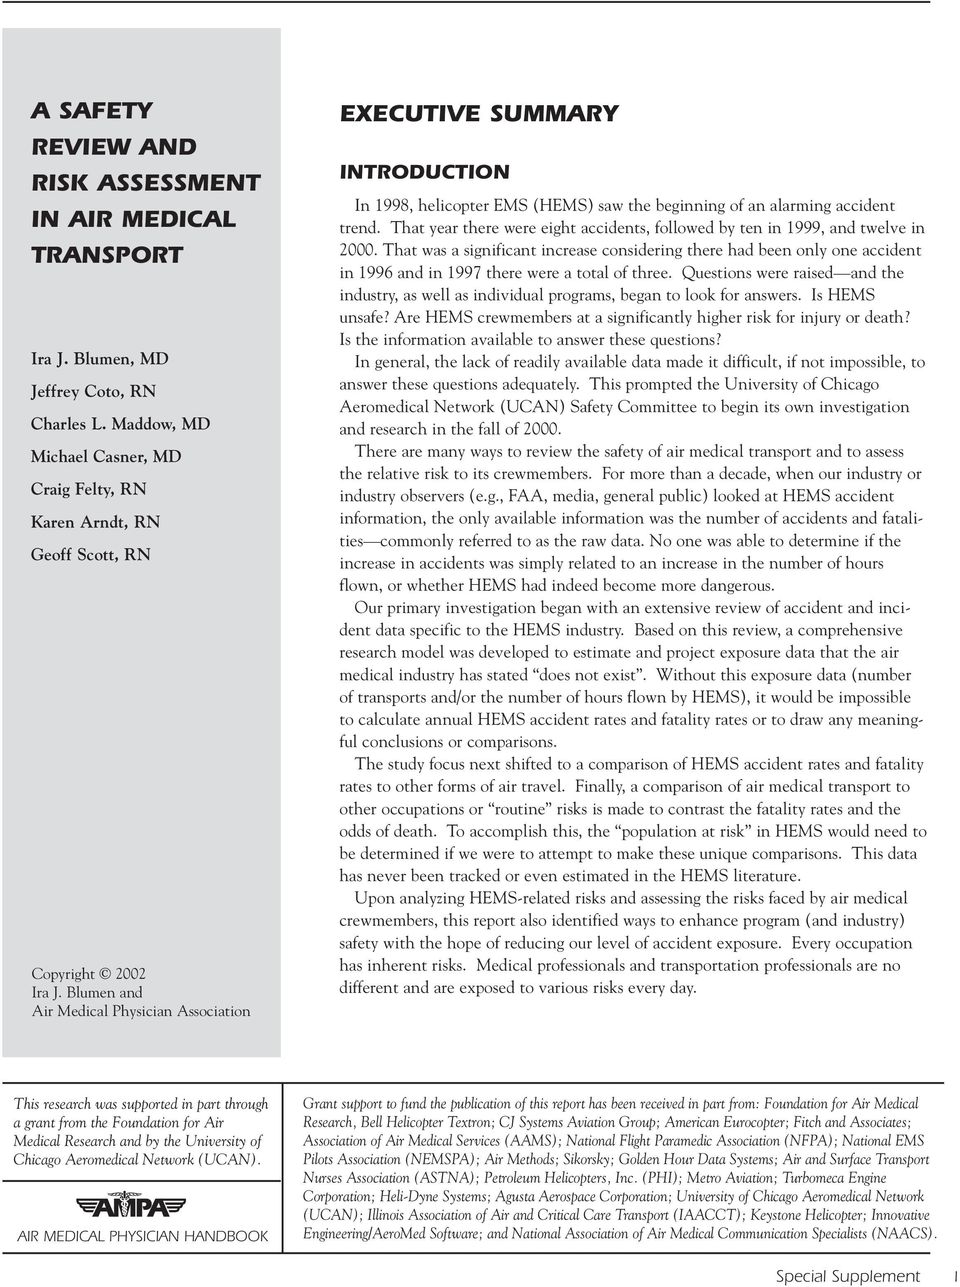 Blumen and Air Medical Physician Association EXECUTIVE SUMMARY INTRODUCTION In 1998, helicopter EMS (HEMS) saw the beginning of an alarming accident trend.